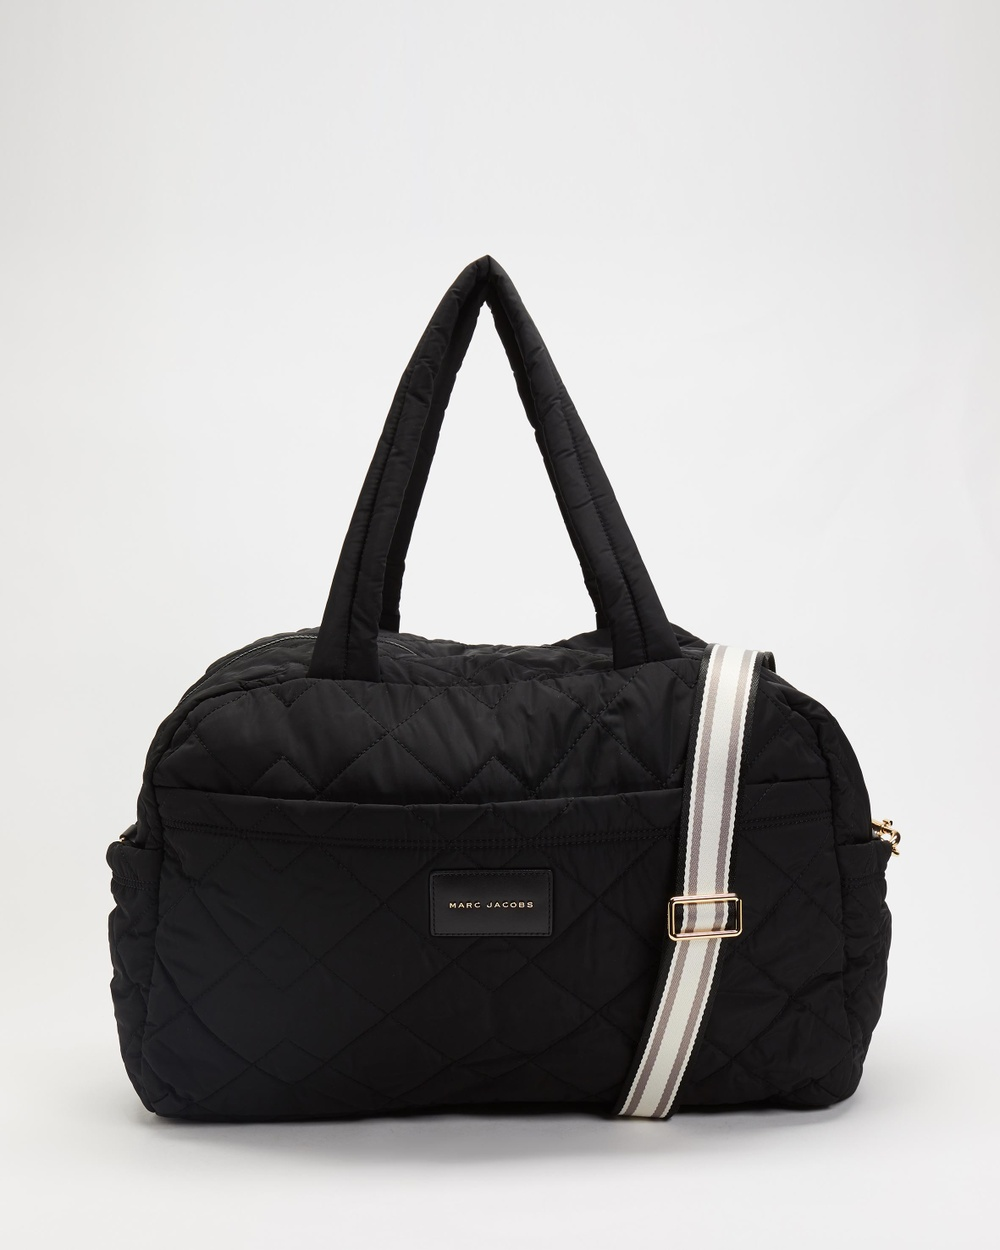 The Marc Jacobs E Quilted Nylon Large Weekender Bag Duffle Bags Black E-Quilted